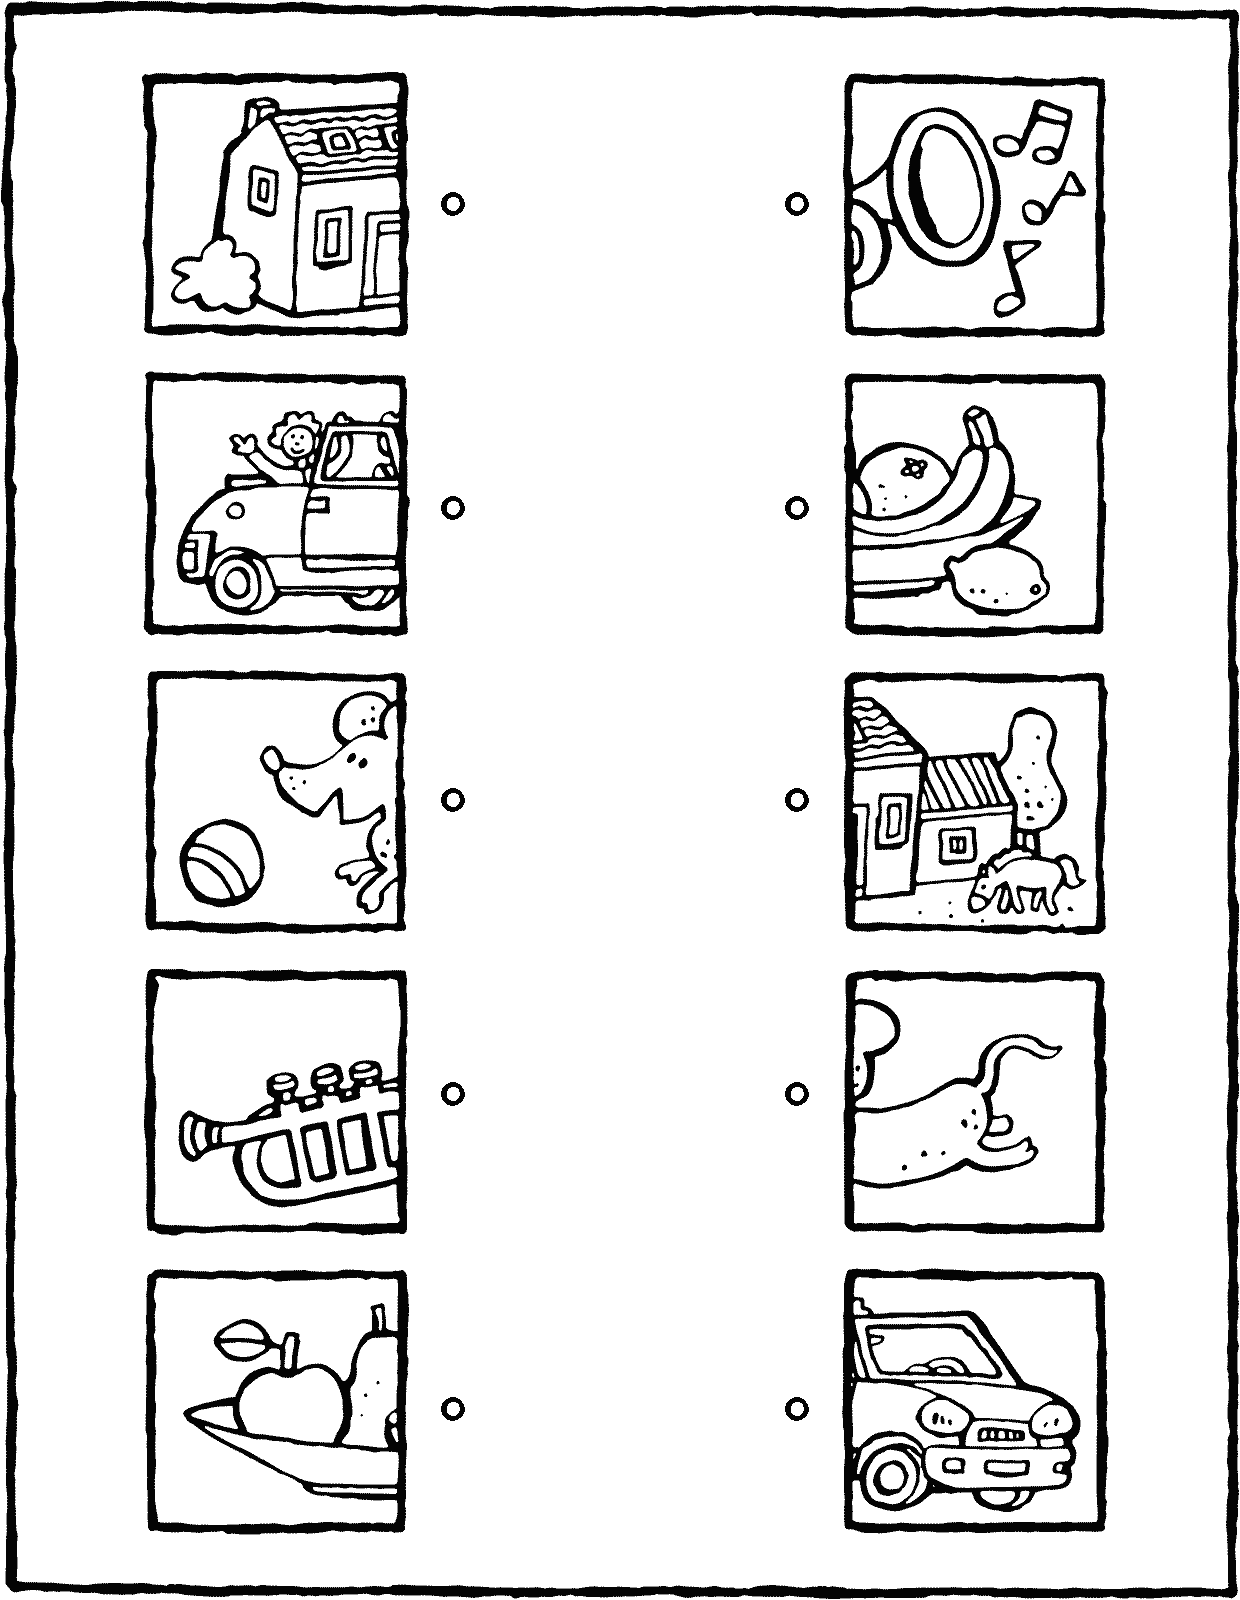 what belongs with what five object colouring page page drawing picture 01V